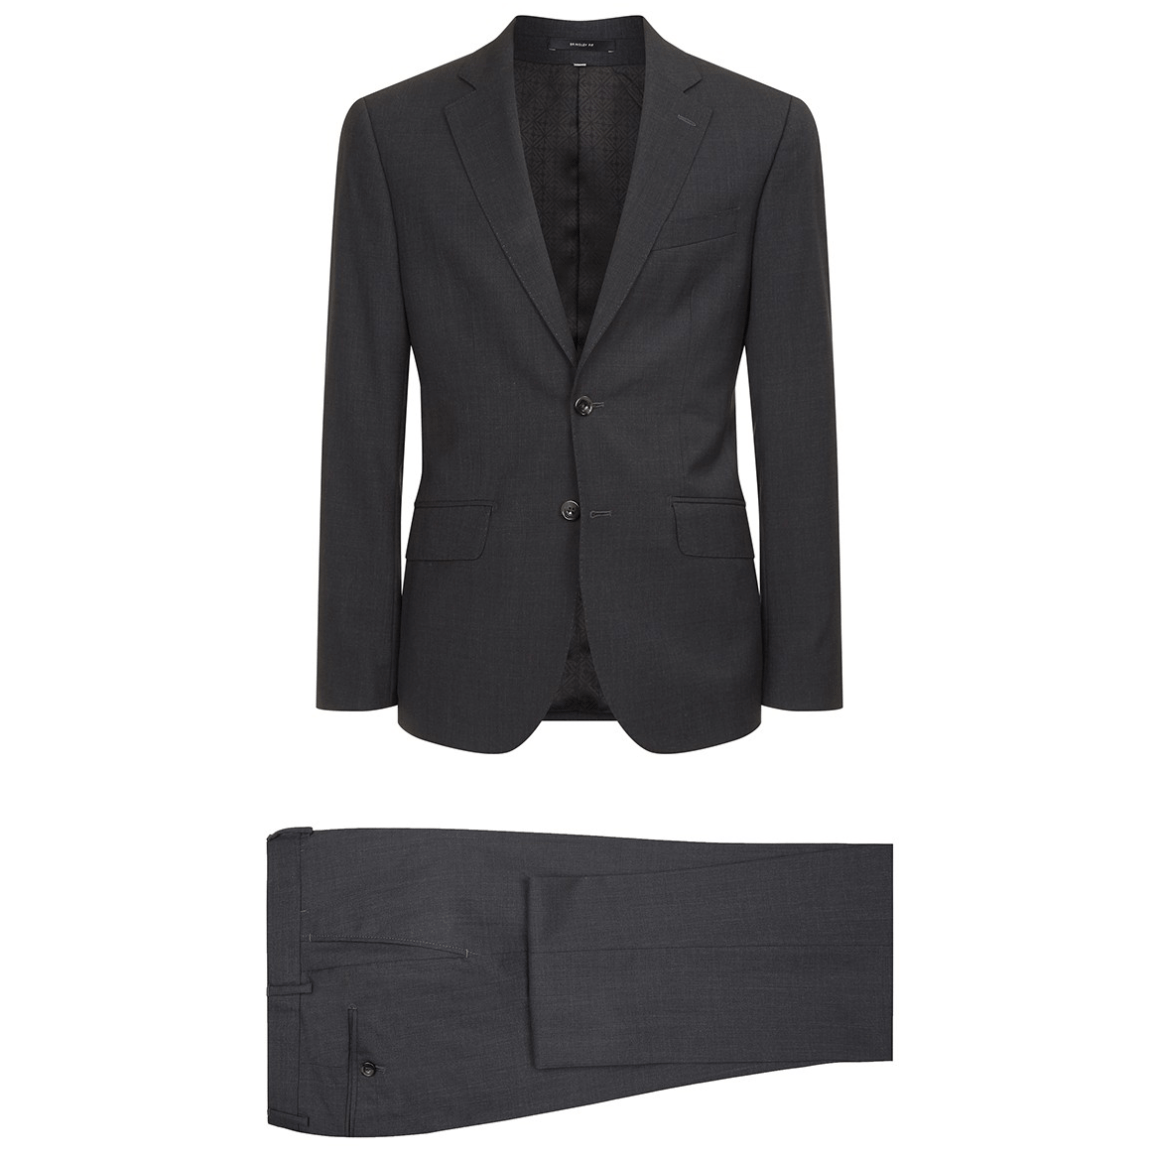 Hardy Amies Charcoal Tropical Wool Suit